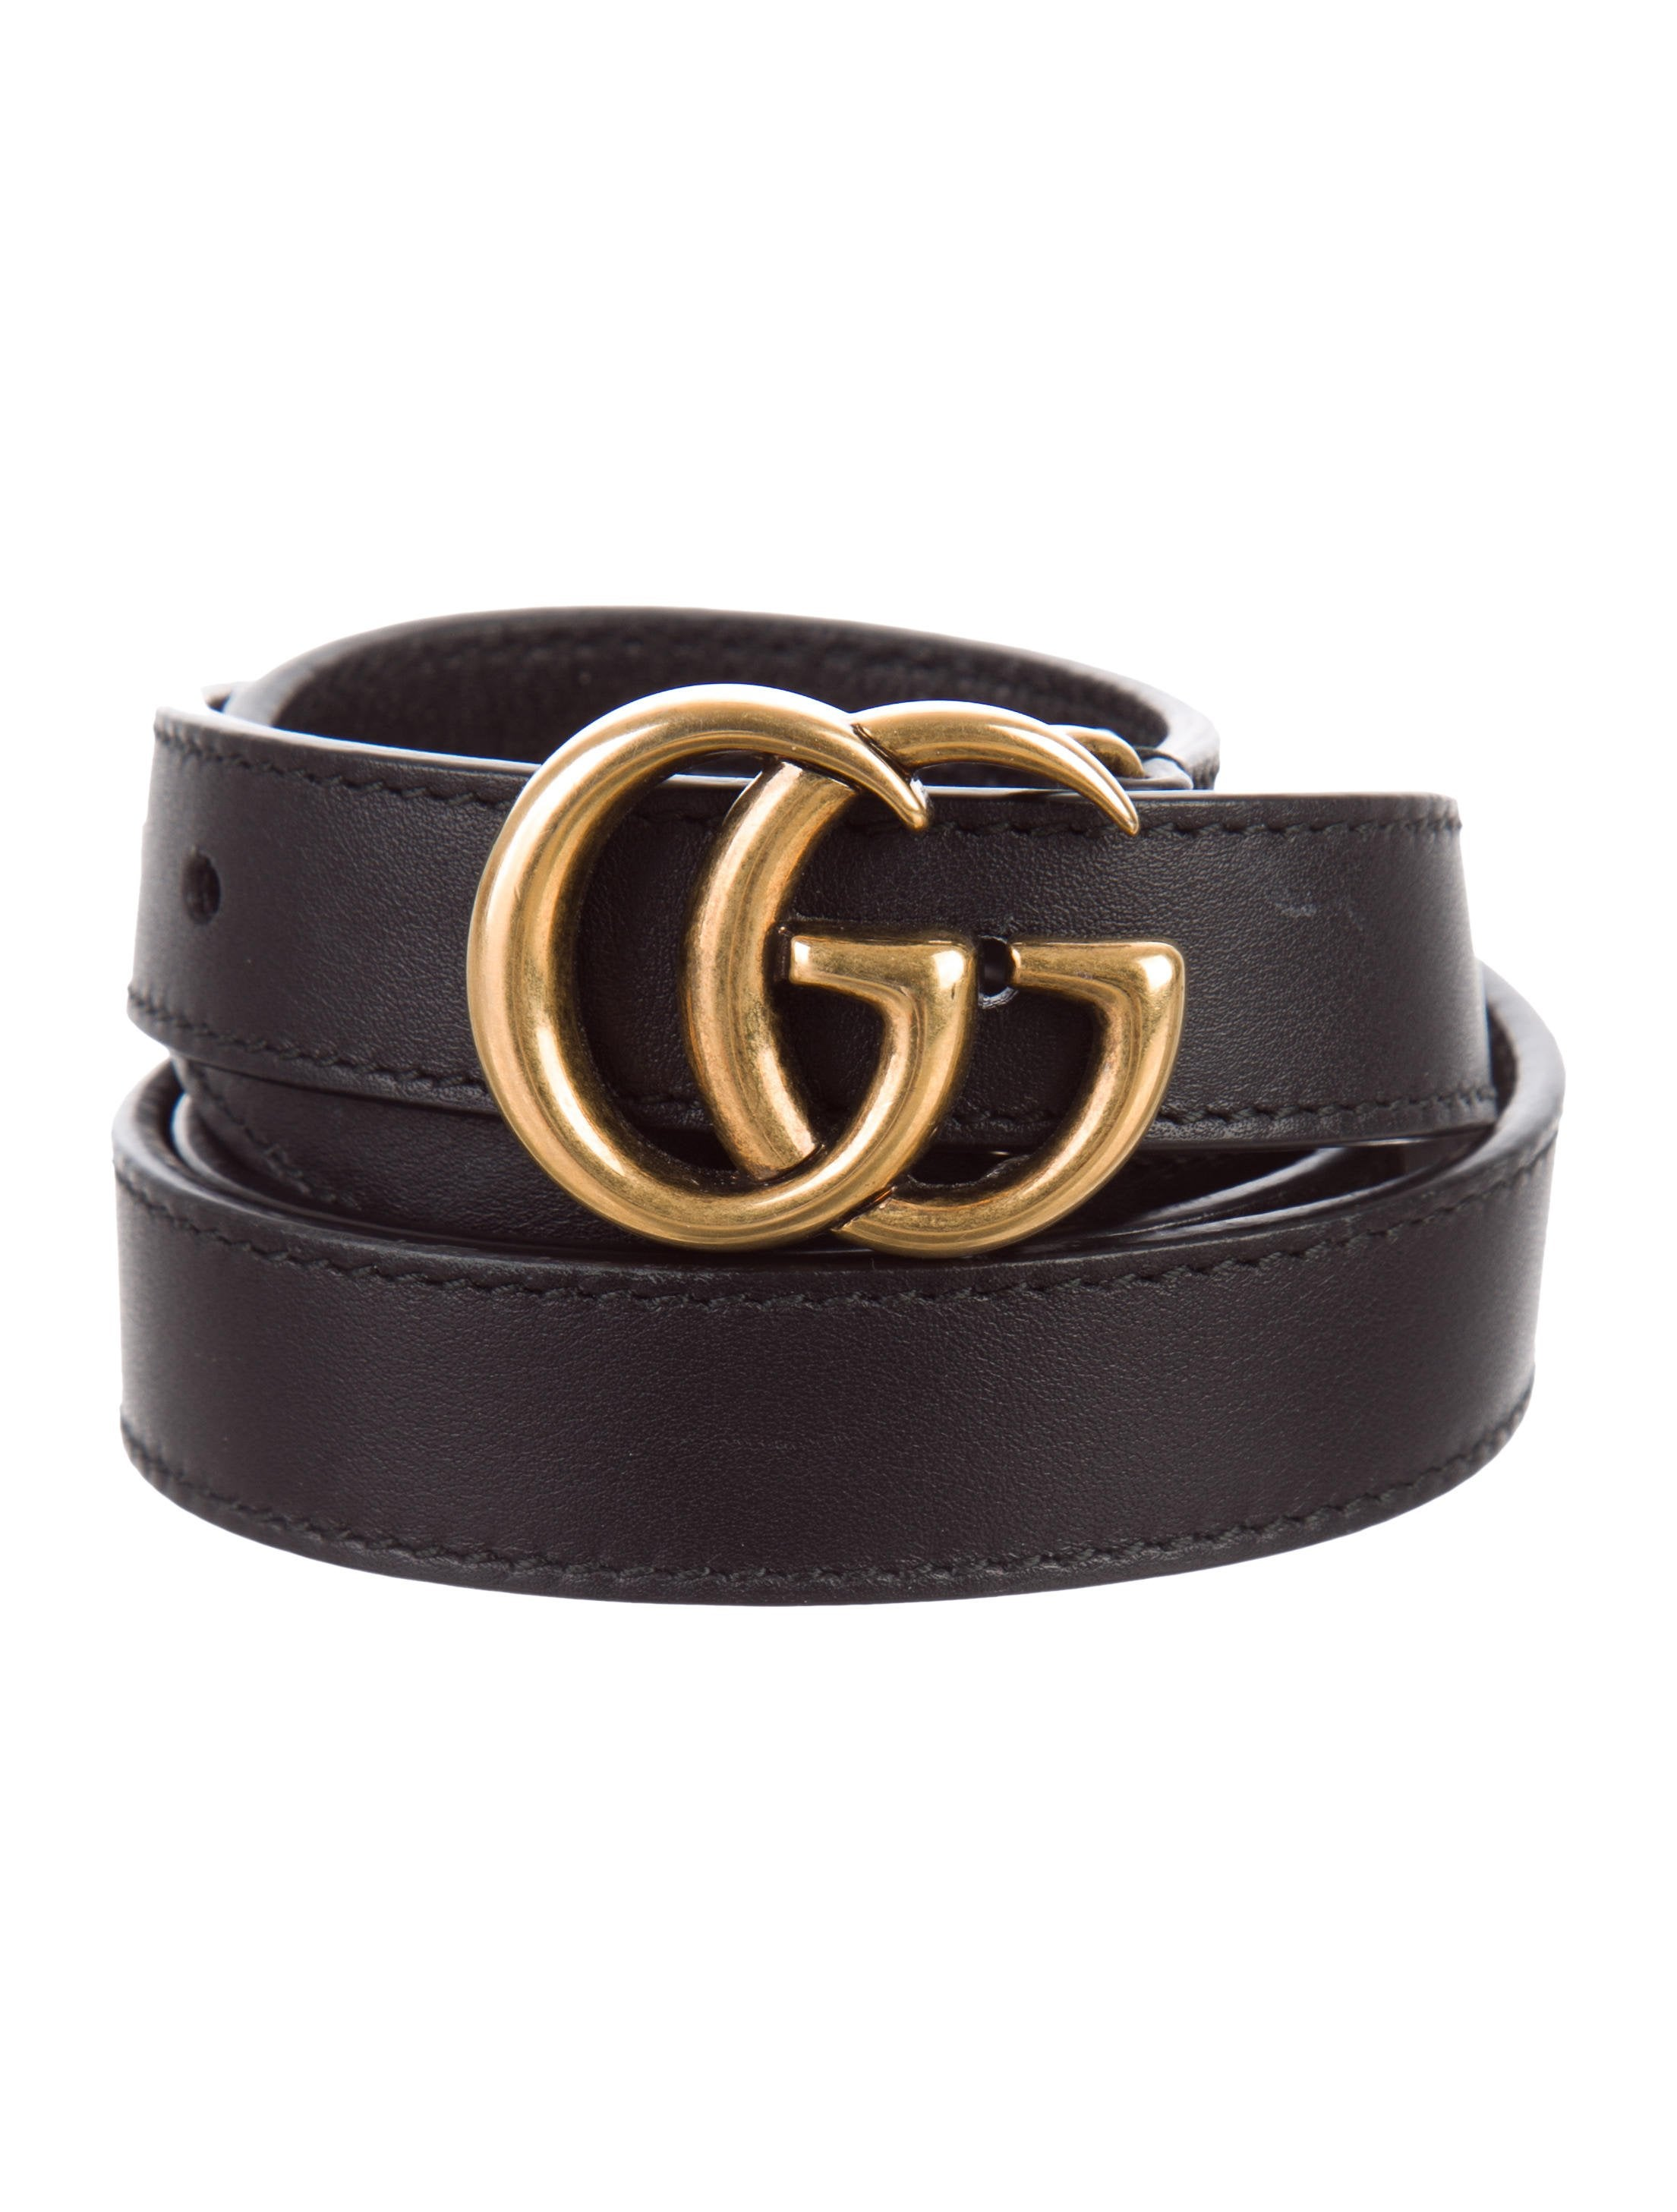 b932463099d2 Gucci Running GG Leather Belt - Accessories - GUC177259 | The RealReal